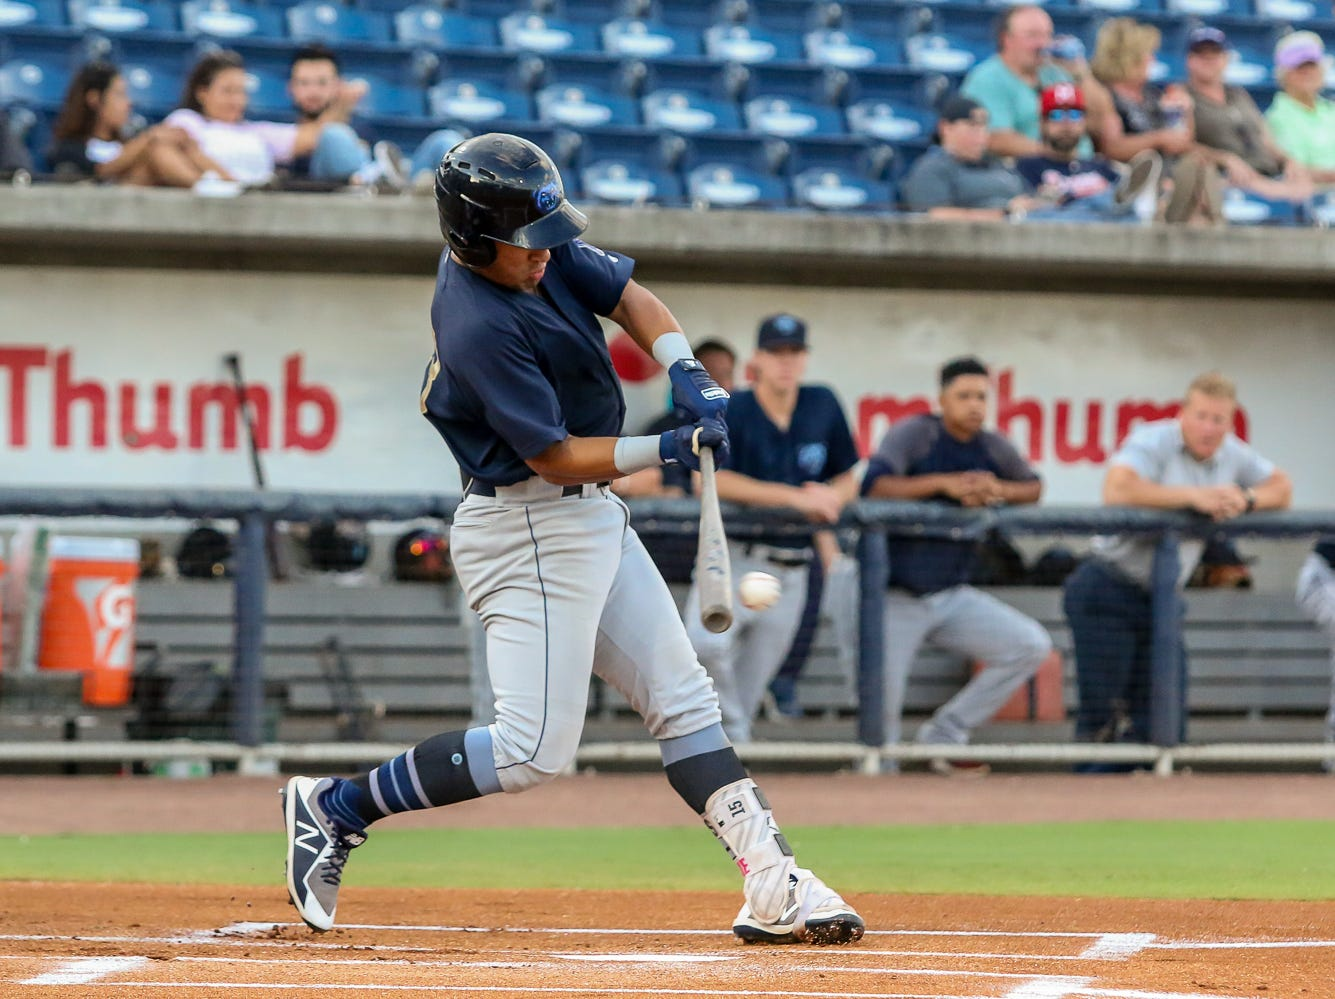 Mobile's Jahmai Jones (23) hits the ball to Pensacola shortstop Luis Gonzalez and is thrown out at first base during the Blue Wahoos' last home game of the regular season on Tuesday, August 28, 2018.